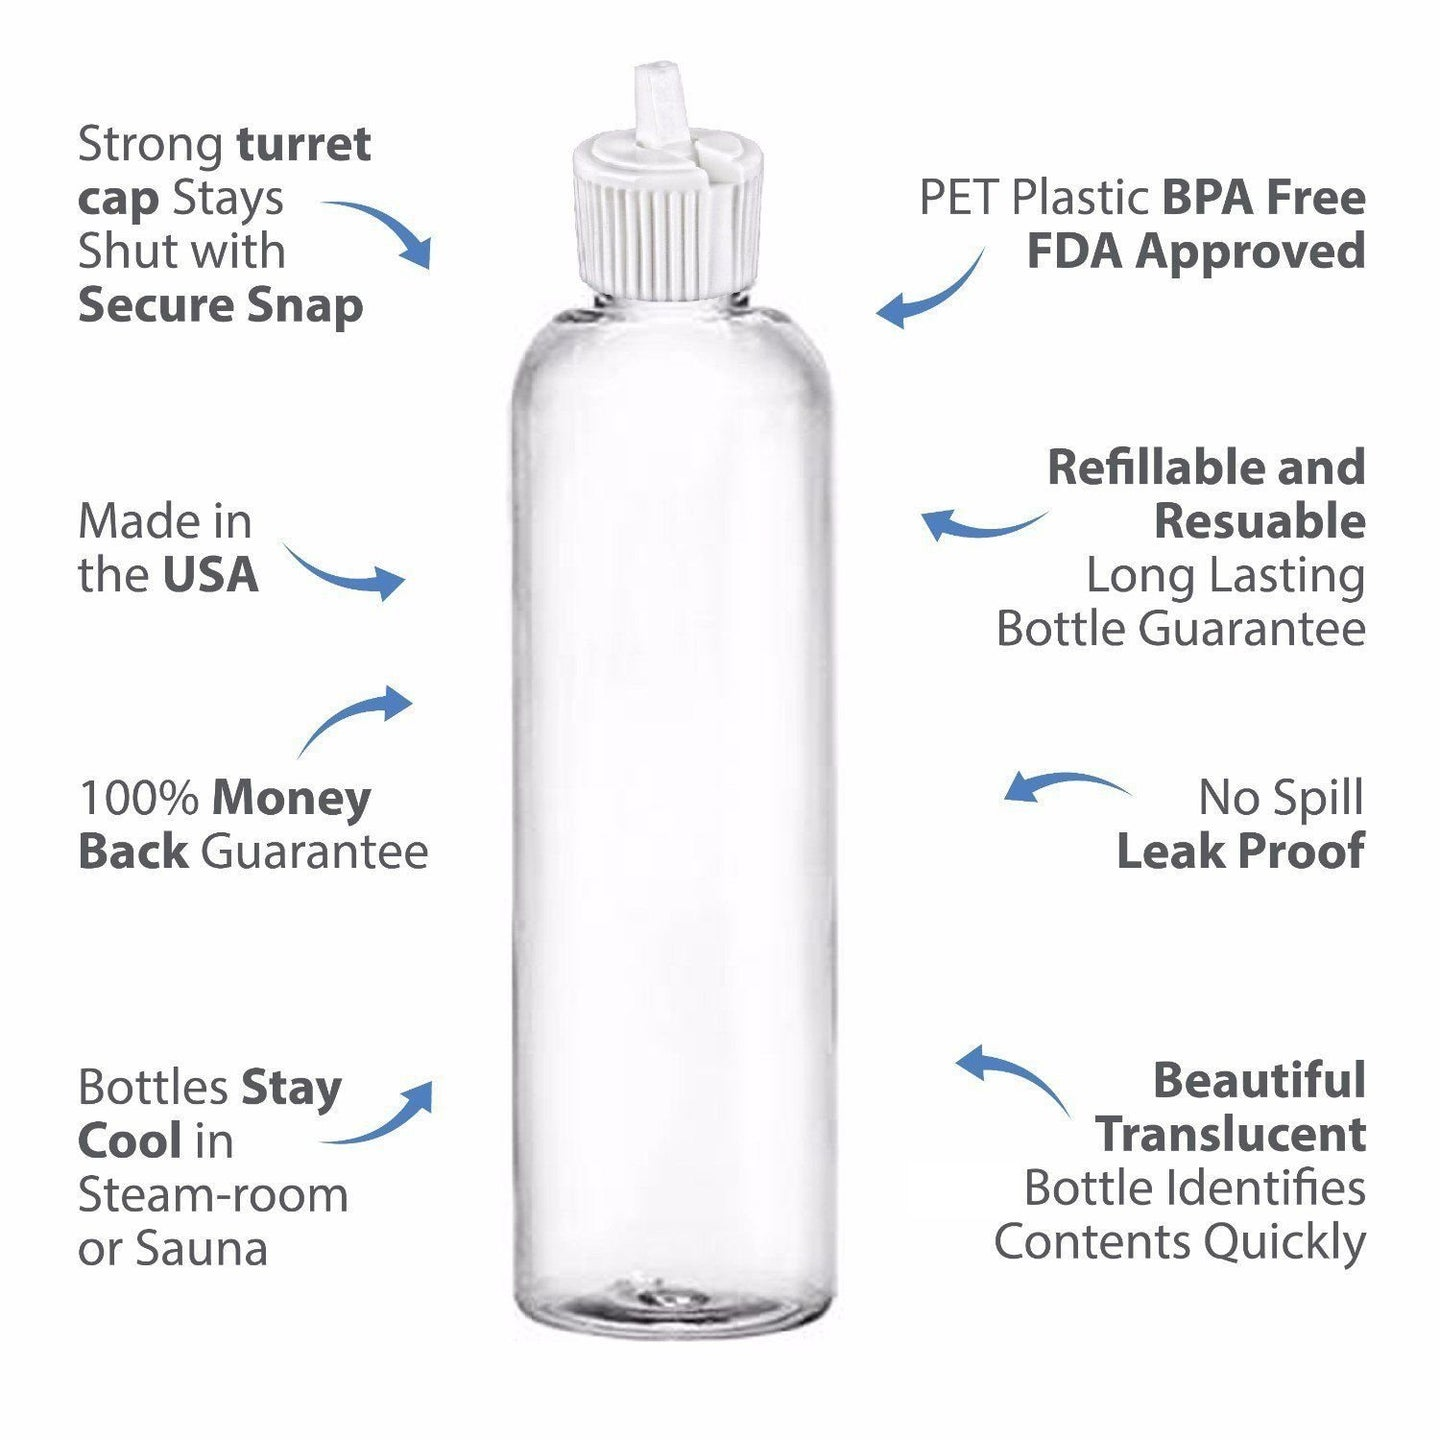 MoYo Natural Labs 4 oz Squirt Bottles, Squeezable Empty Travel Containers, BPA Free PET Plastic for Essential Oils and Liquids, Toiletry/Cosmetic Bottles (Neck 20-410) (Pack of 30, Clear)